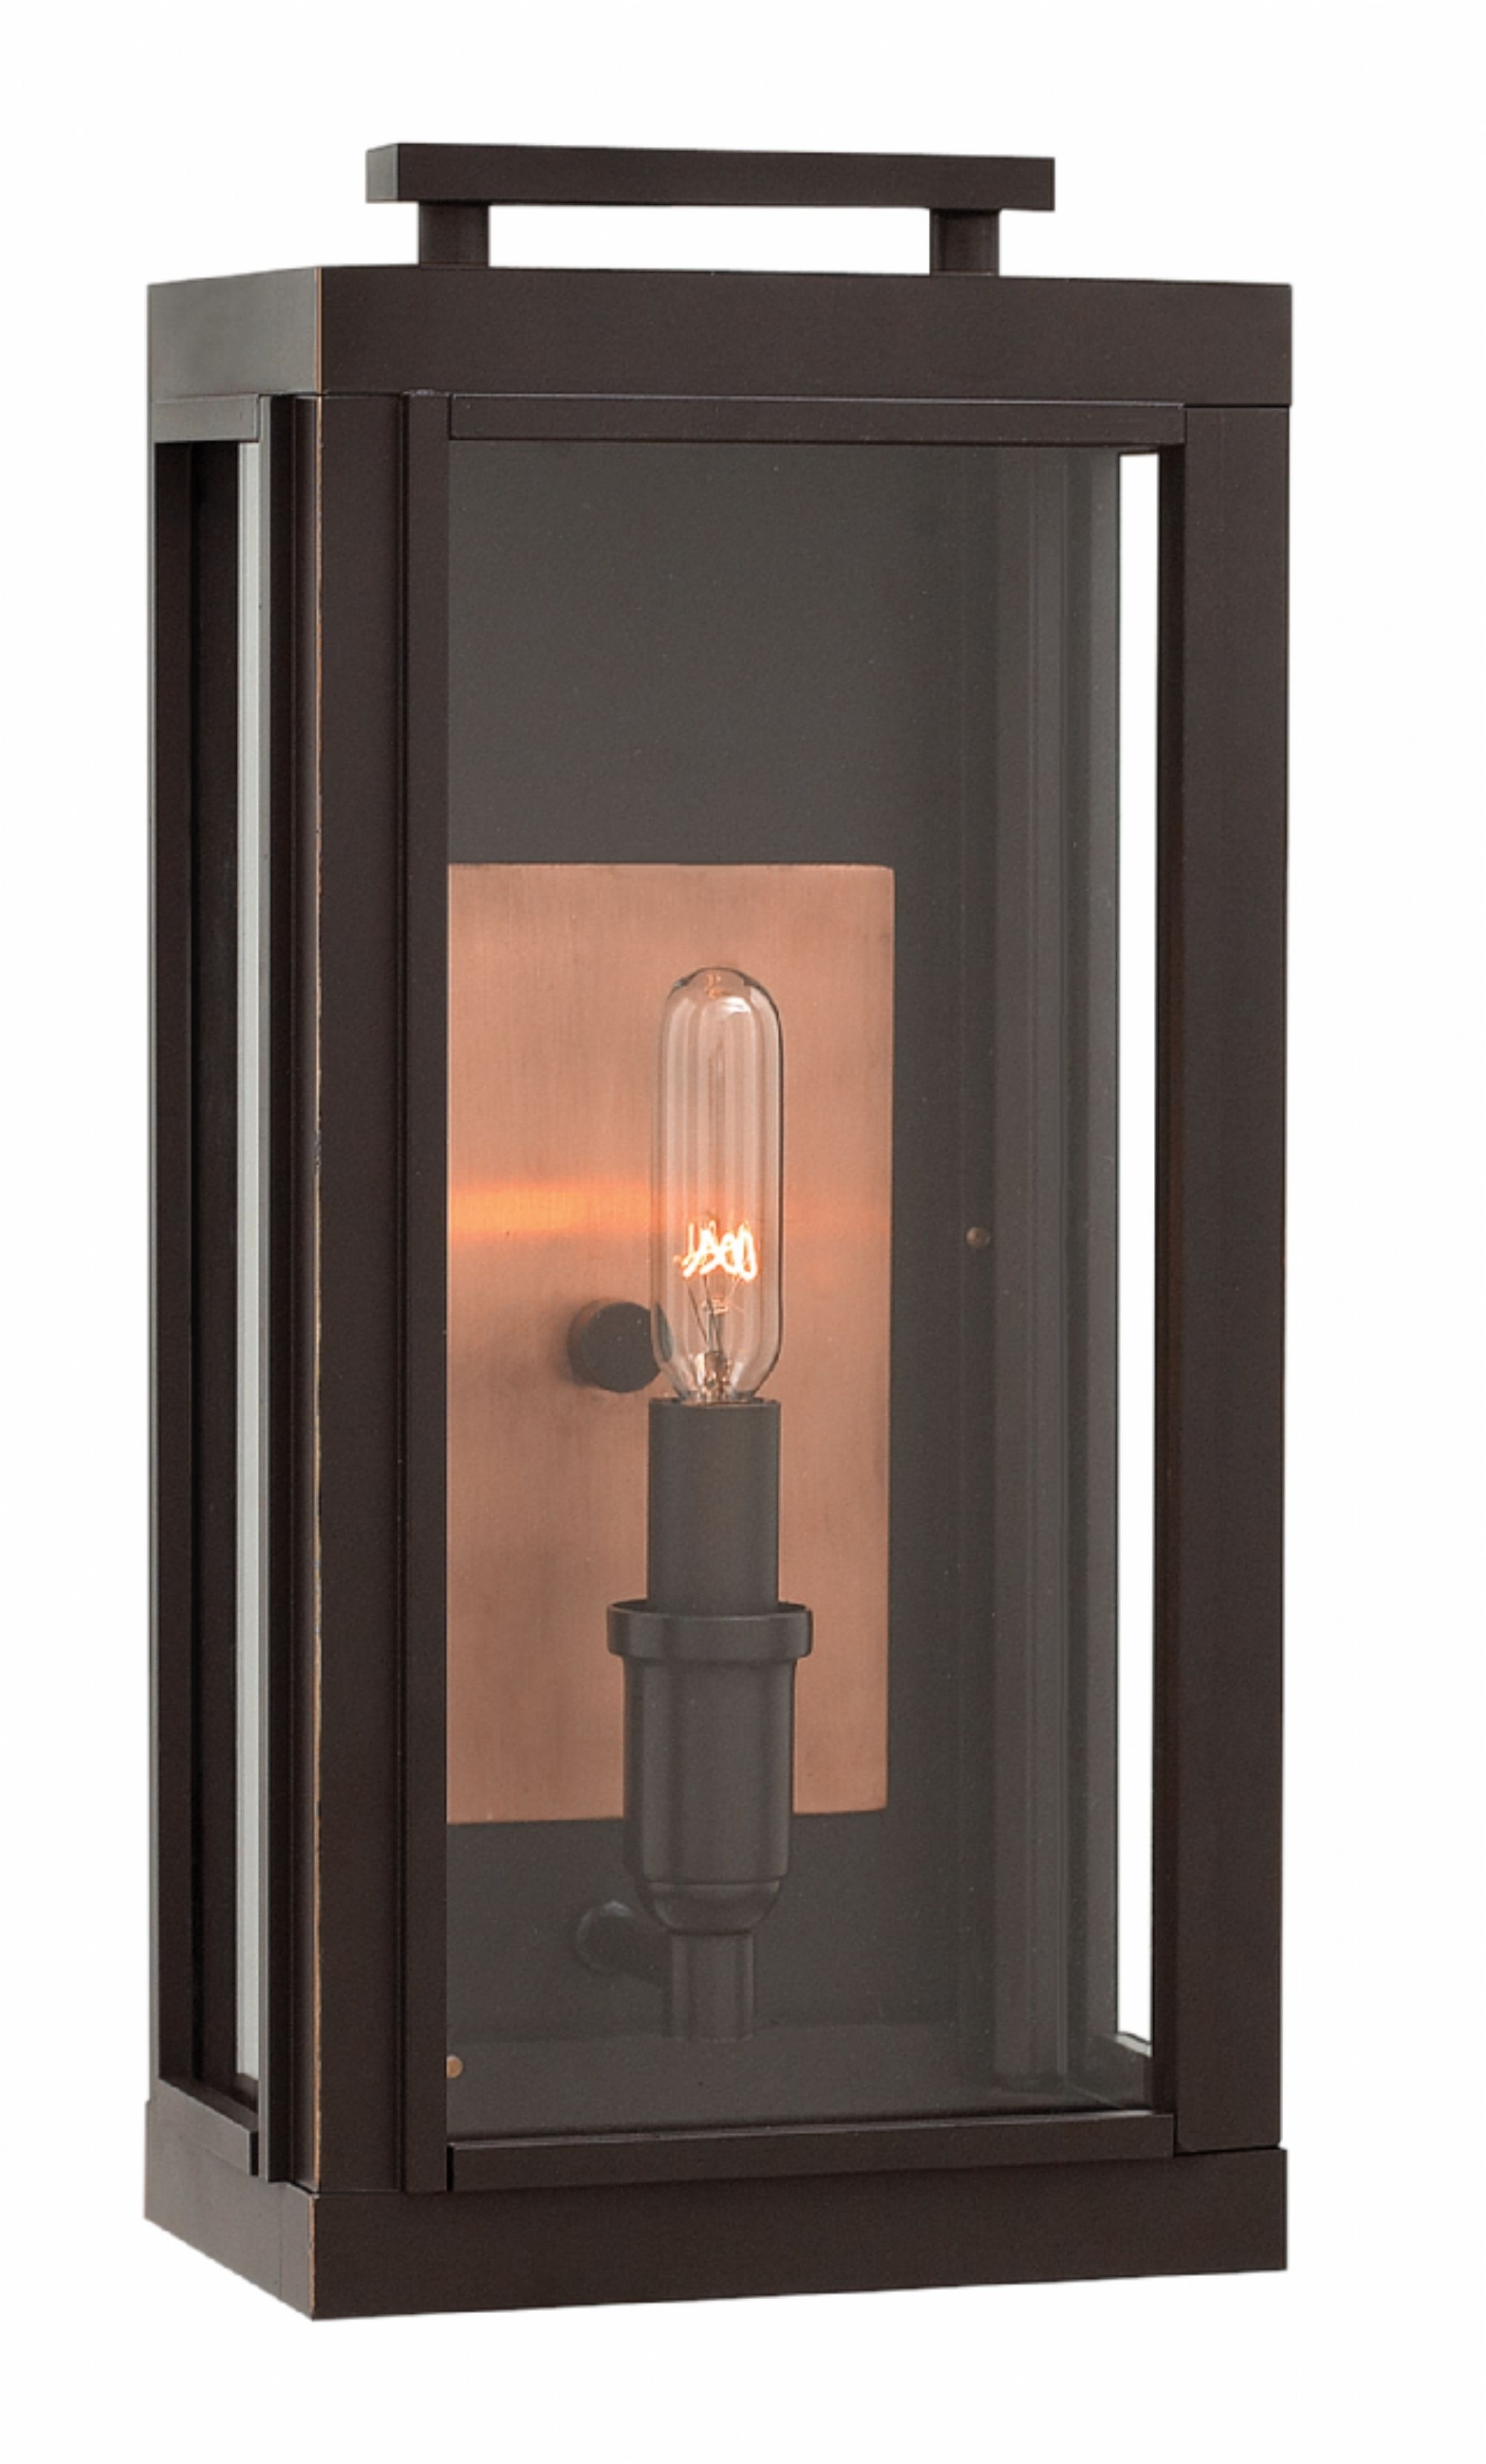 Double Wall Mount Hinkley Lighting Within Fashionable Oil Rubbed Bronze Sutcliffe > Exterior Wall Mount (View 13 of 20)